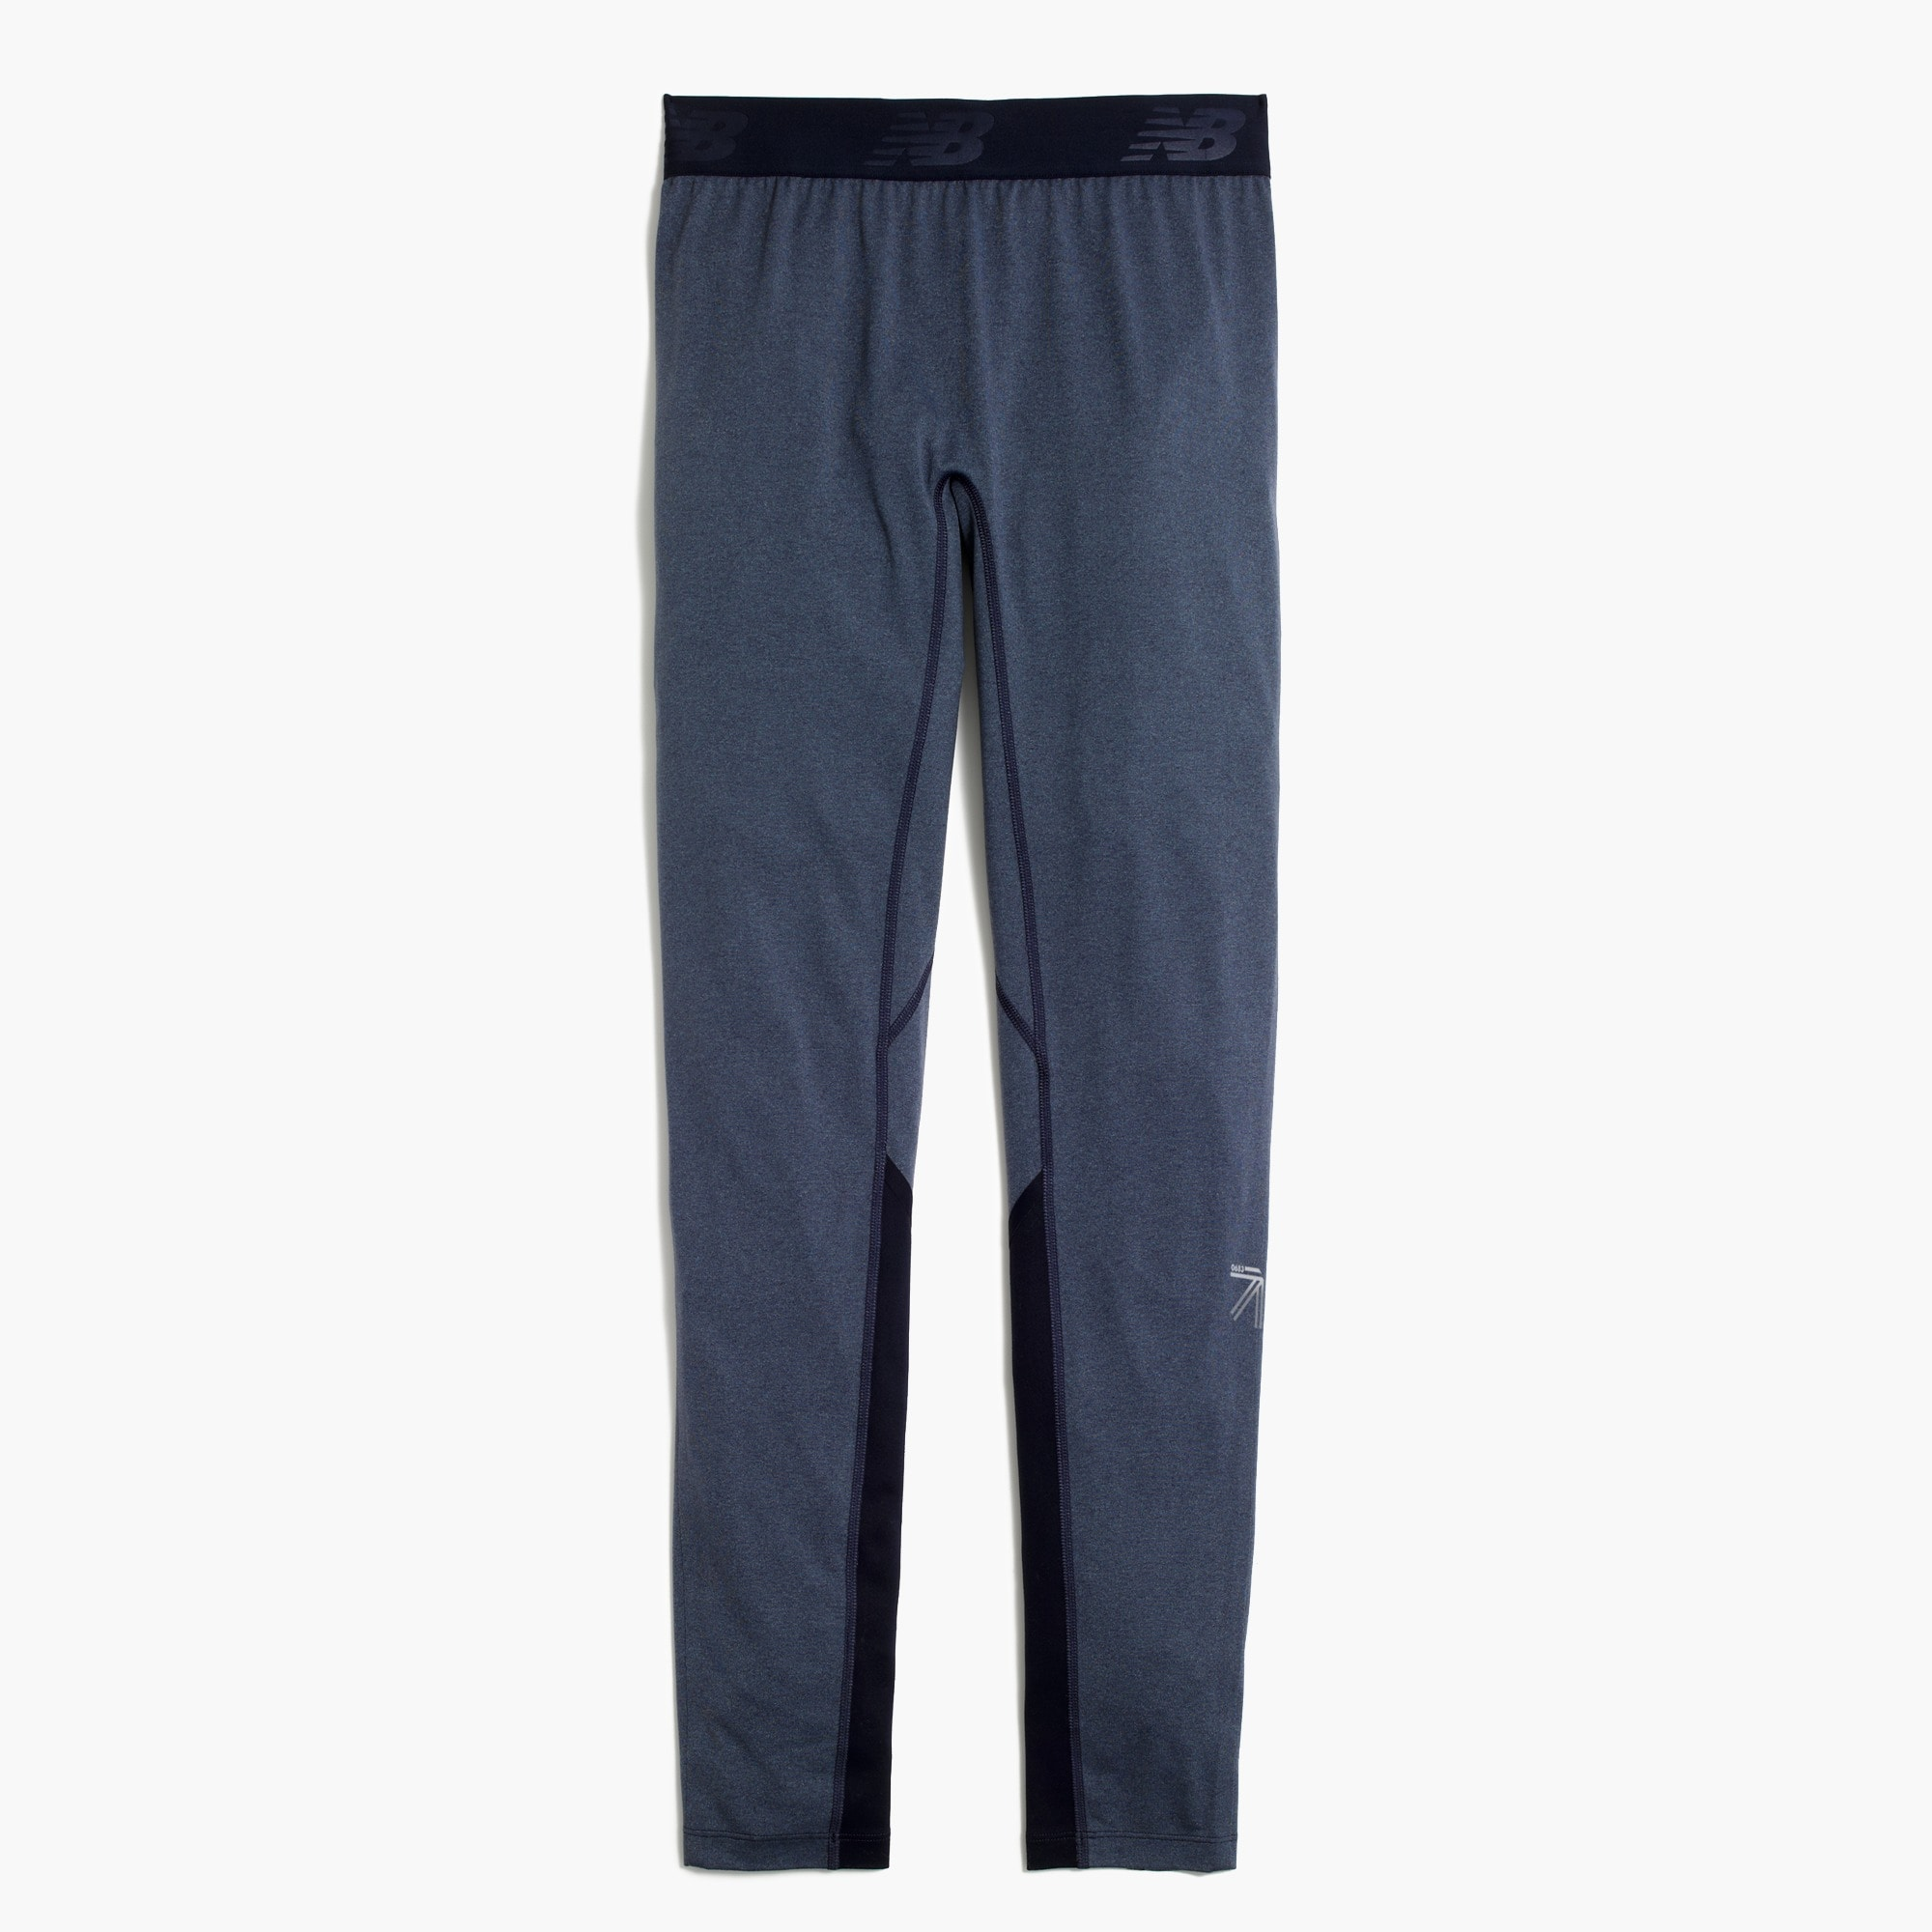 New Balance® for J.Crew compression tights